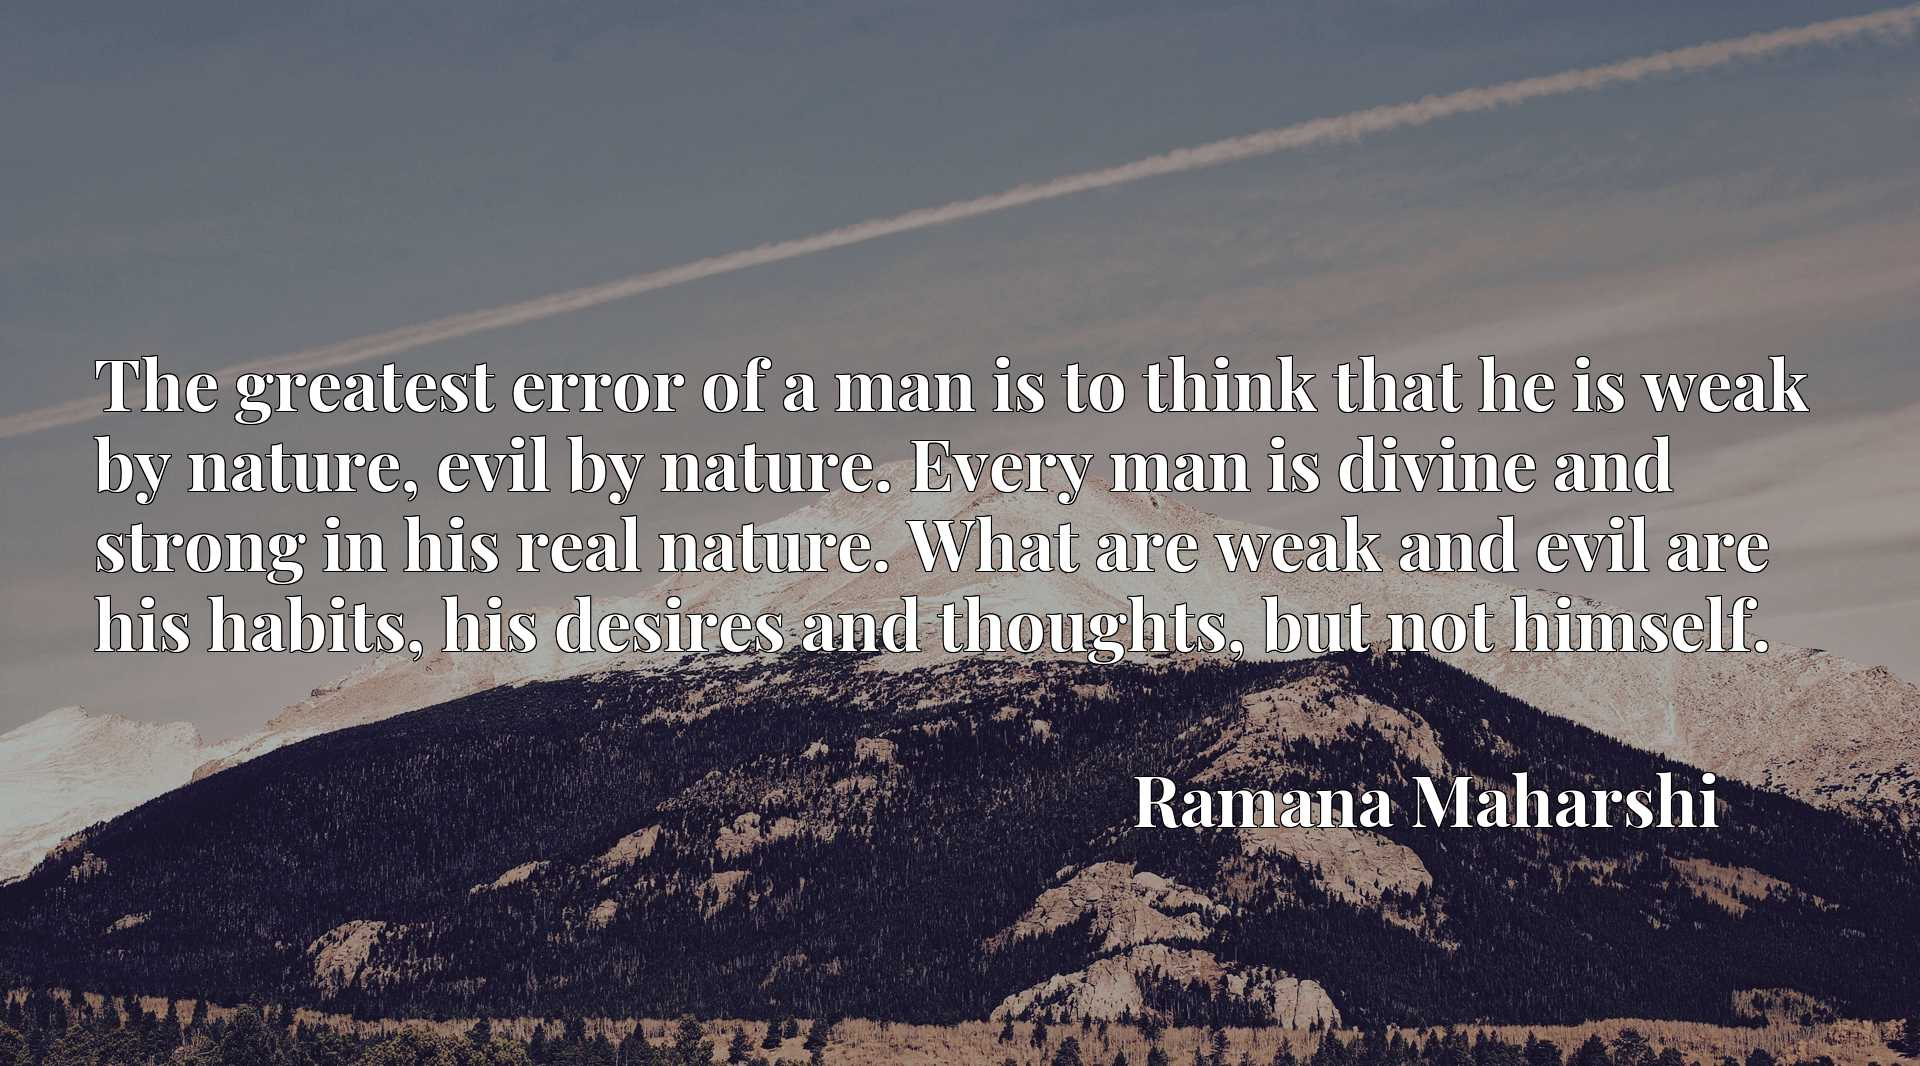 The greatest error of a man is to think that he is weak by nature, evil by nature. Every man is divine and strong in his real nature. What are weak and evil are his habits, his desires and thoughts, but not himself.